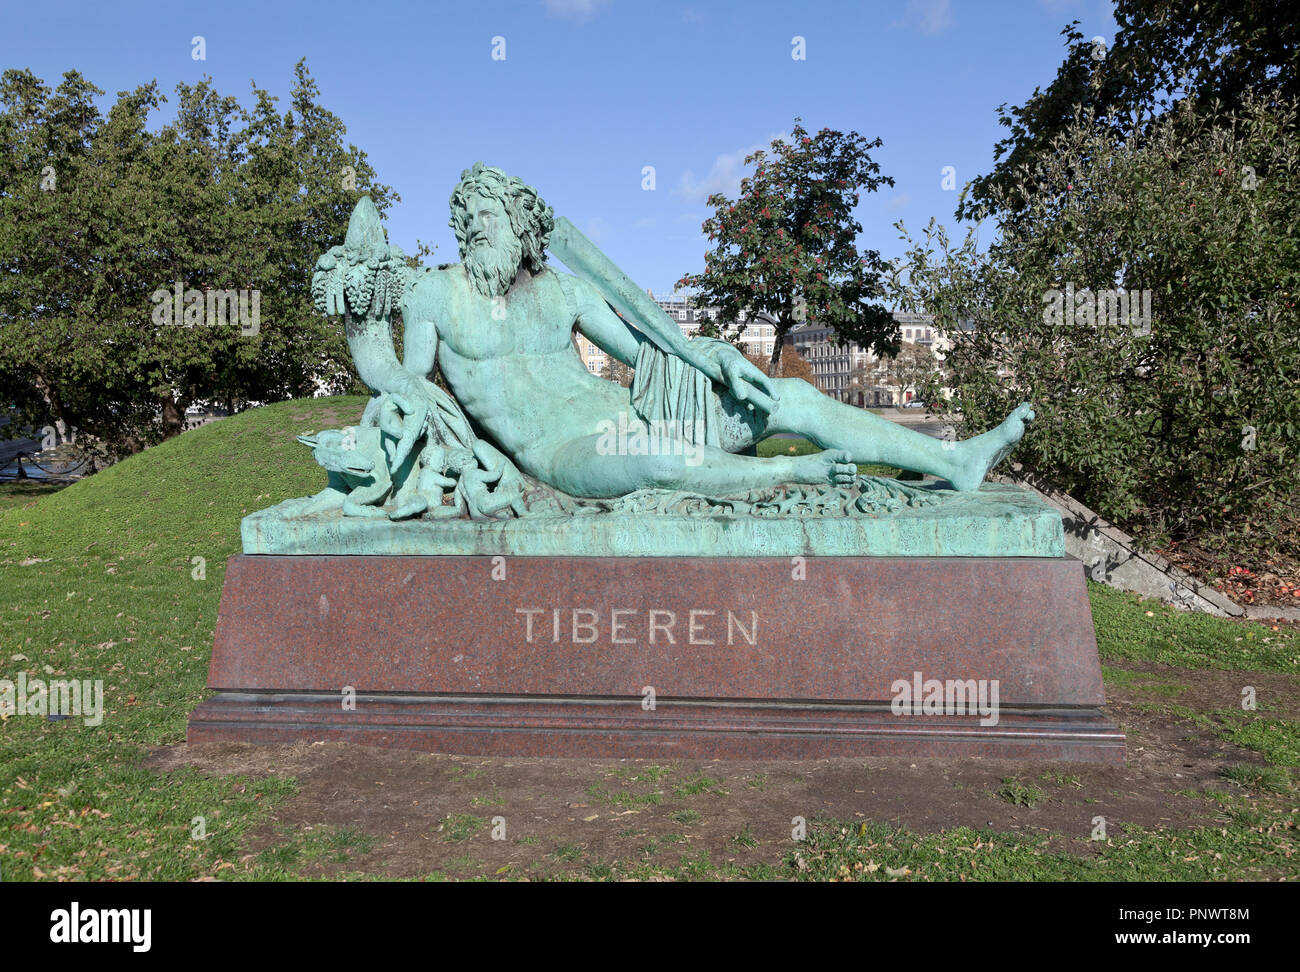 The Tiberen, the Tiber, bronze sculpture on granite named after the river Tiber in Italy at Sortedam Lake at Søtorvet in Copenhagen. See description. Stock Photo